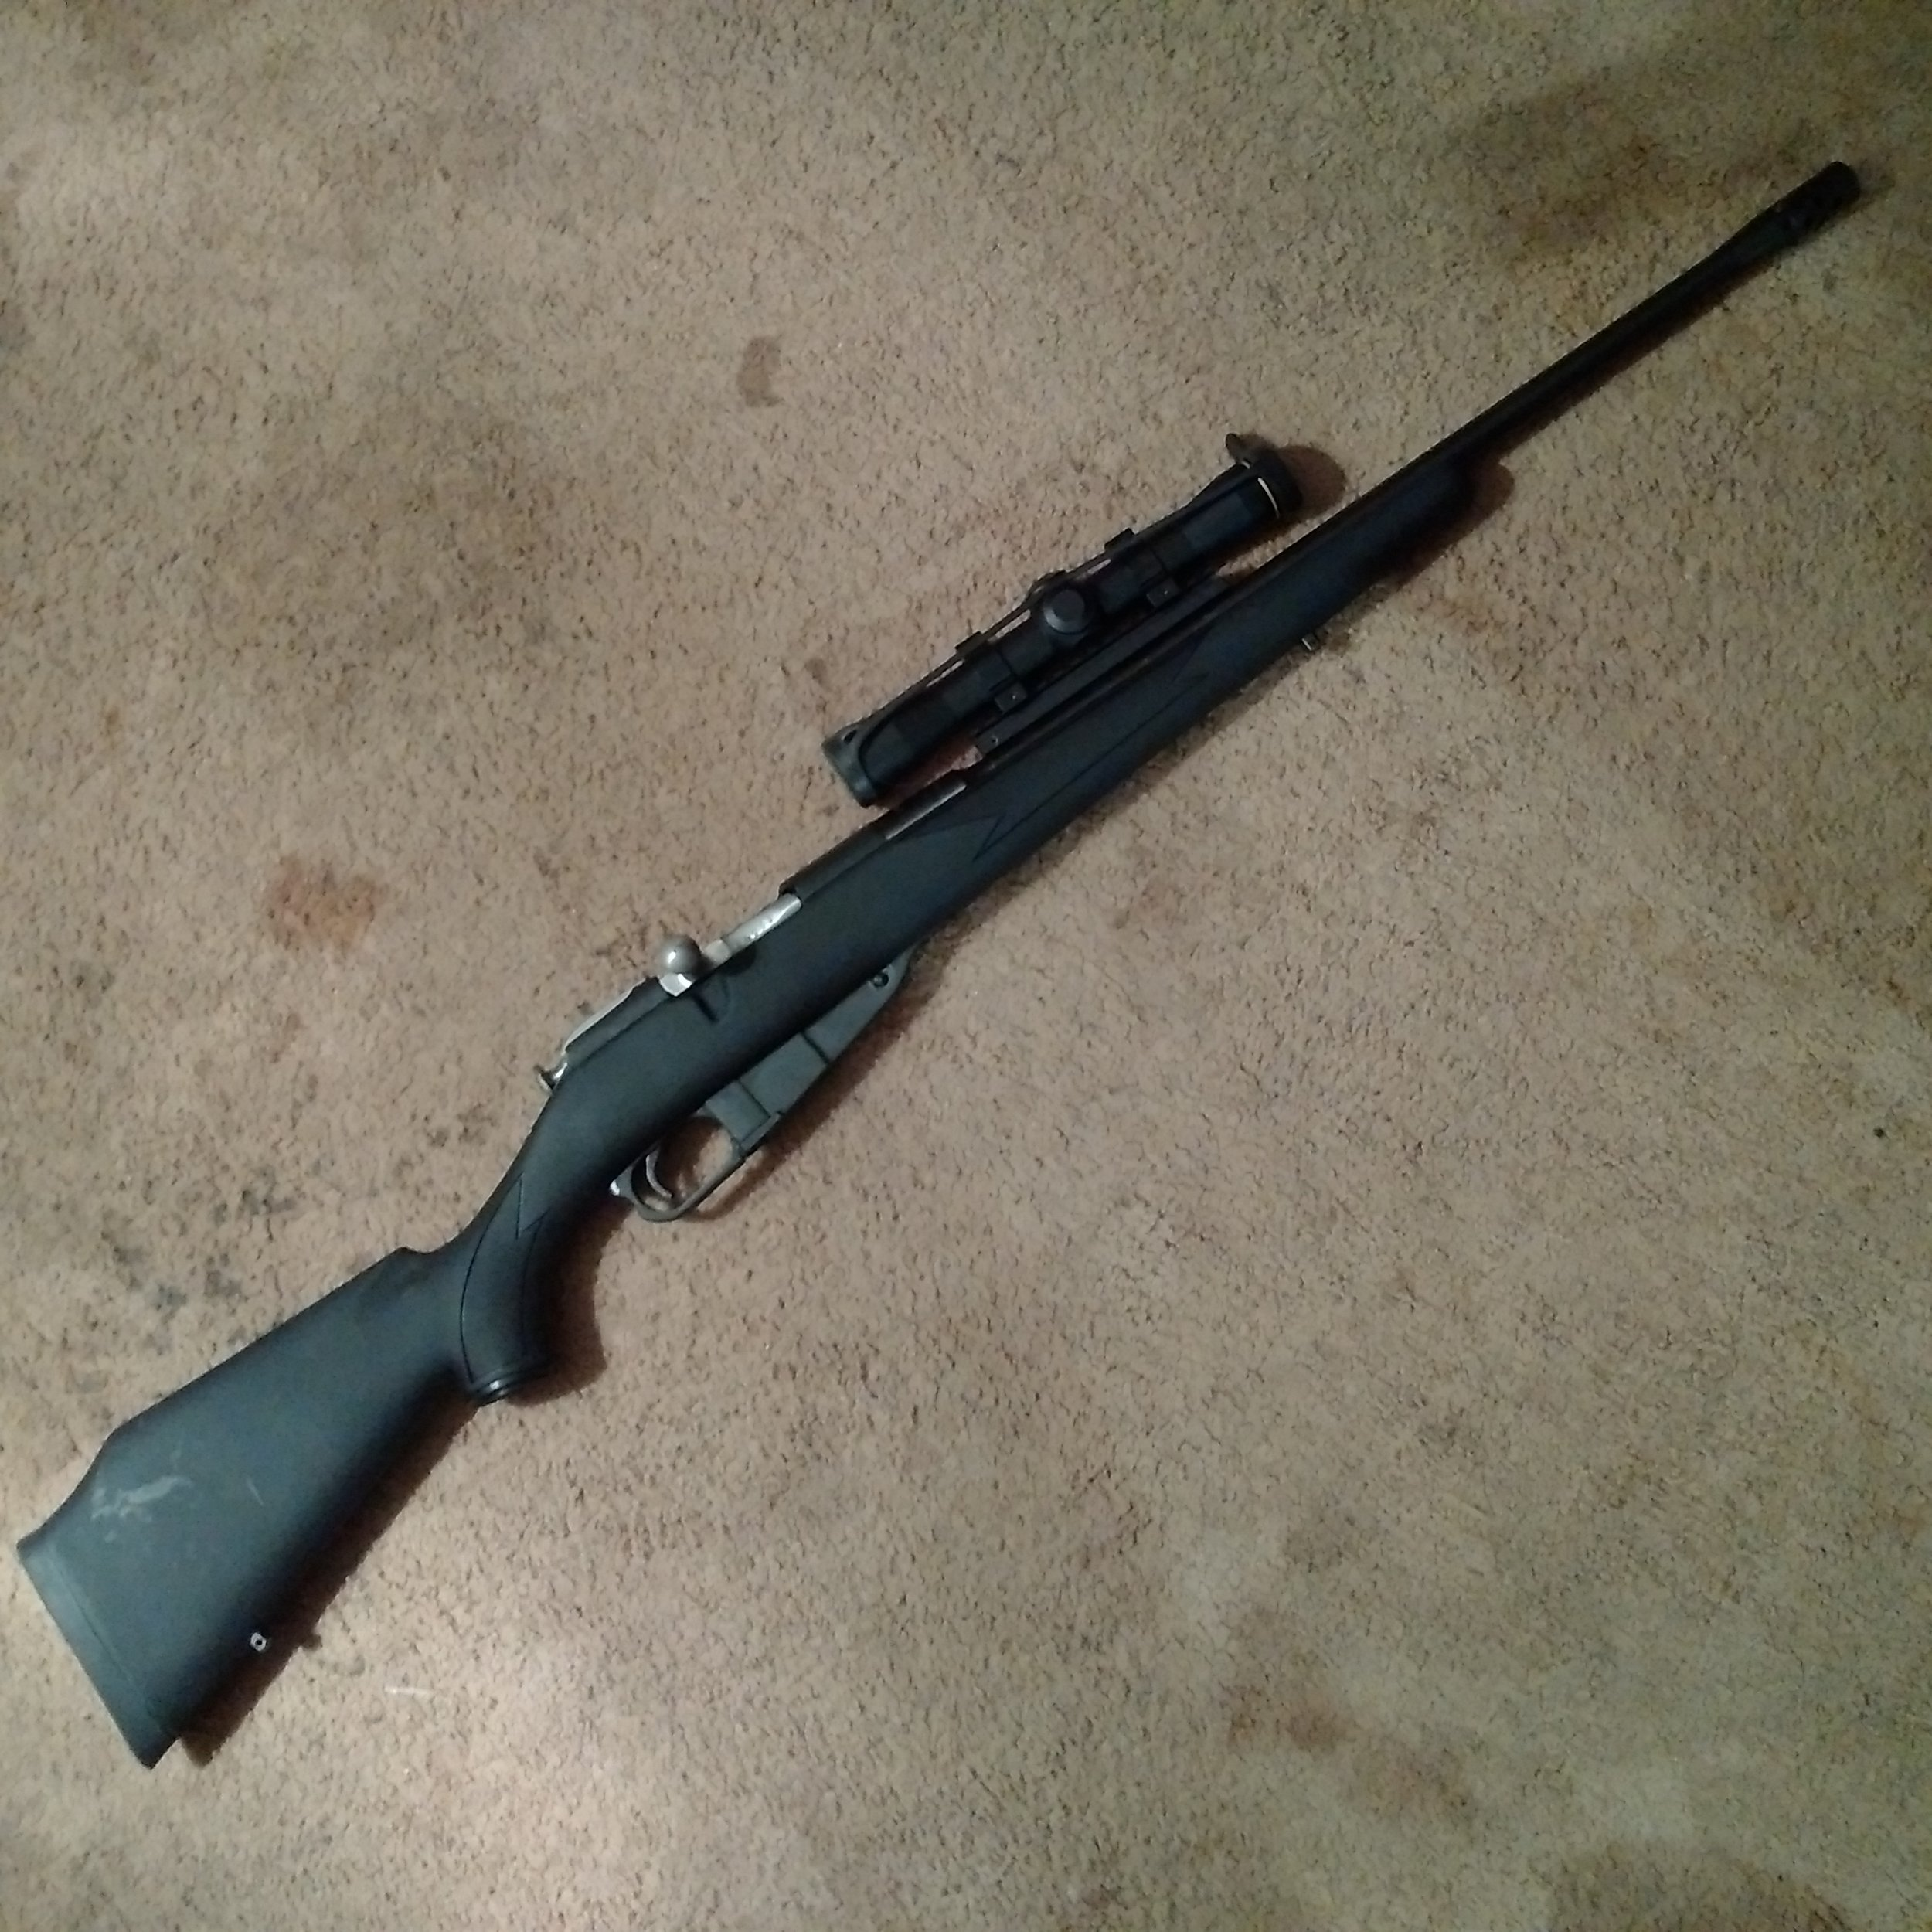 Customized Russian Nagant, custom scout mount for scope, synthetic stock, muzzle break, trigger job, recoil reducers.